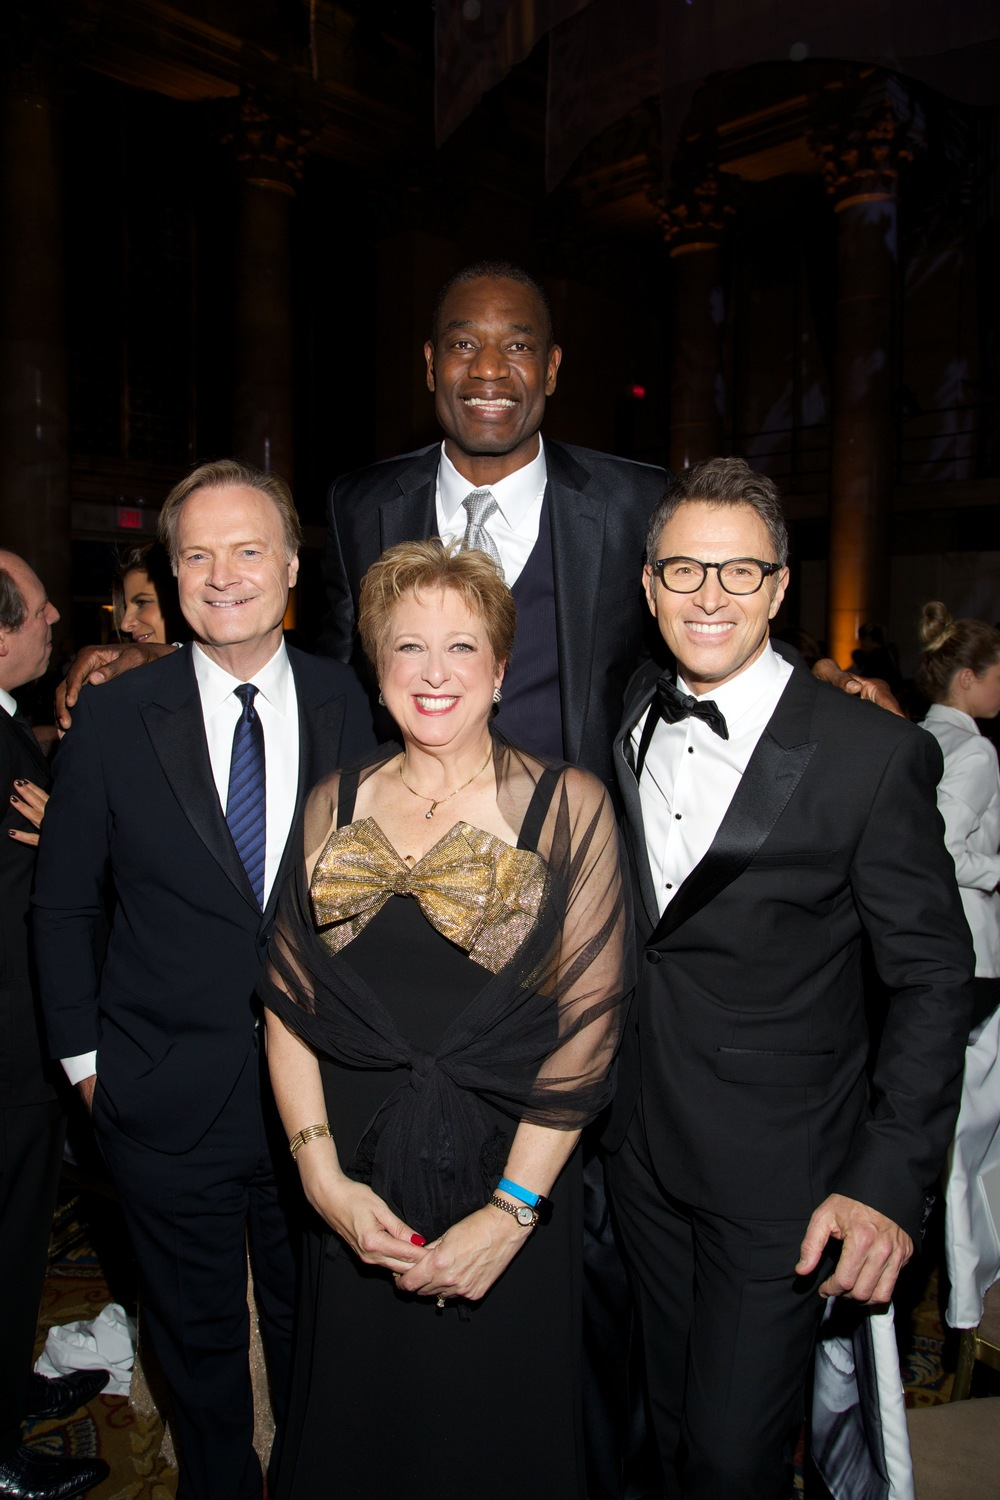 UNICEF USA President & CEO Caryl M. Stern, Lawrence O'Donnell, Dikembe Mutombo and Tim Daly ©2015 Julie Skarratt Photography, Inc./U.S. Fund for UNICEF